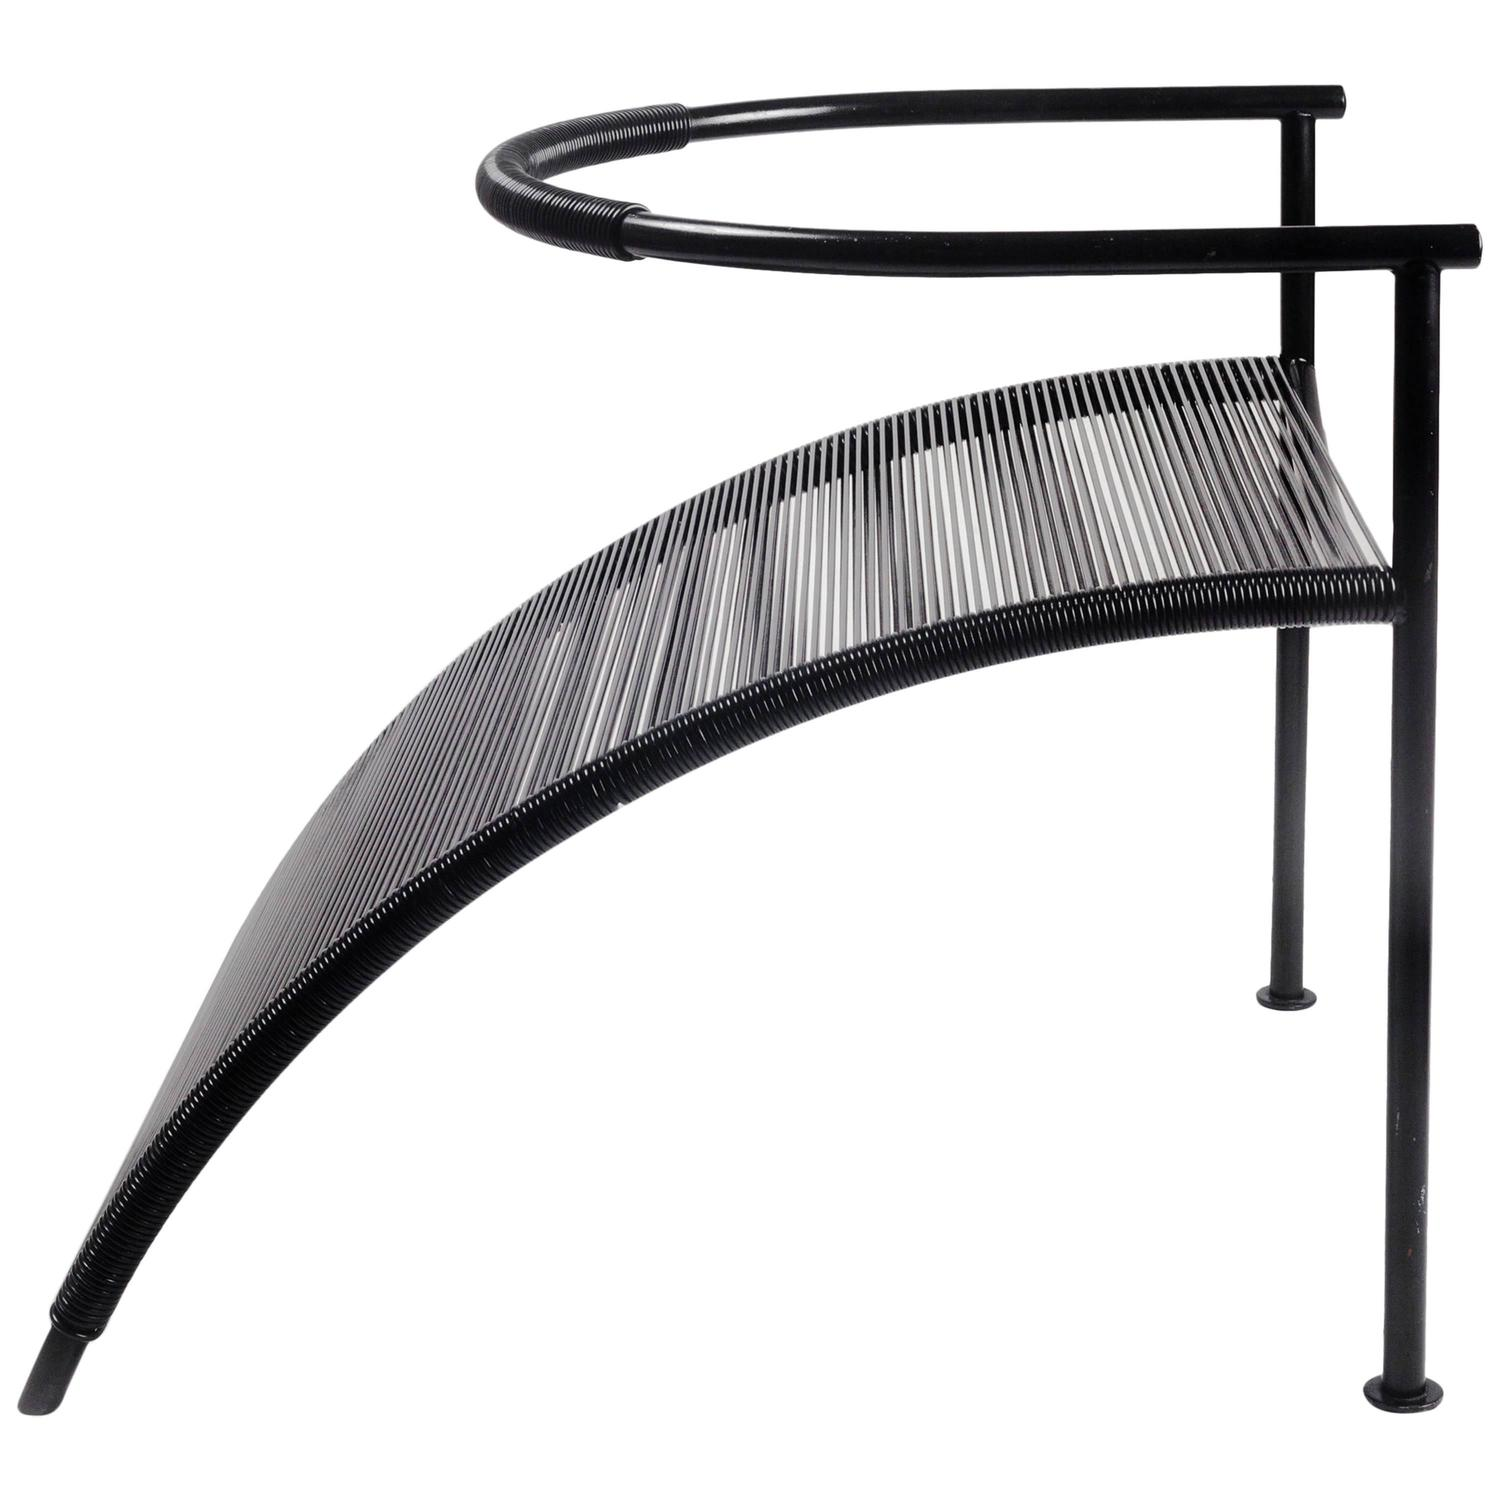 sculptural chair by philippe starck for xo paris black metal and strings 1980s for sale at 1stdibs. Black Bedroom Furniture Sets. Home Design Ideas